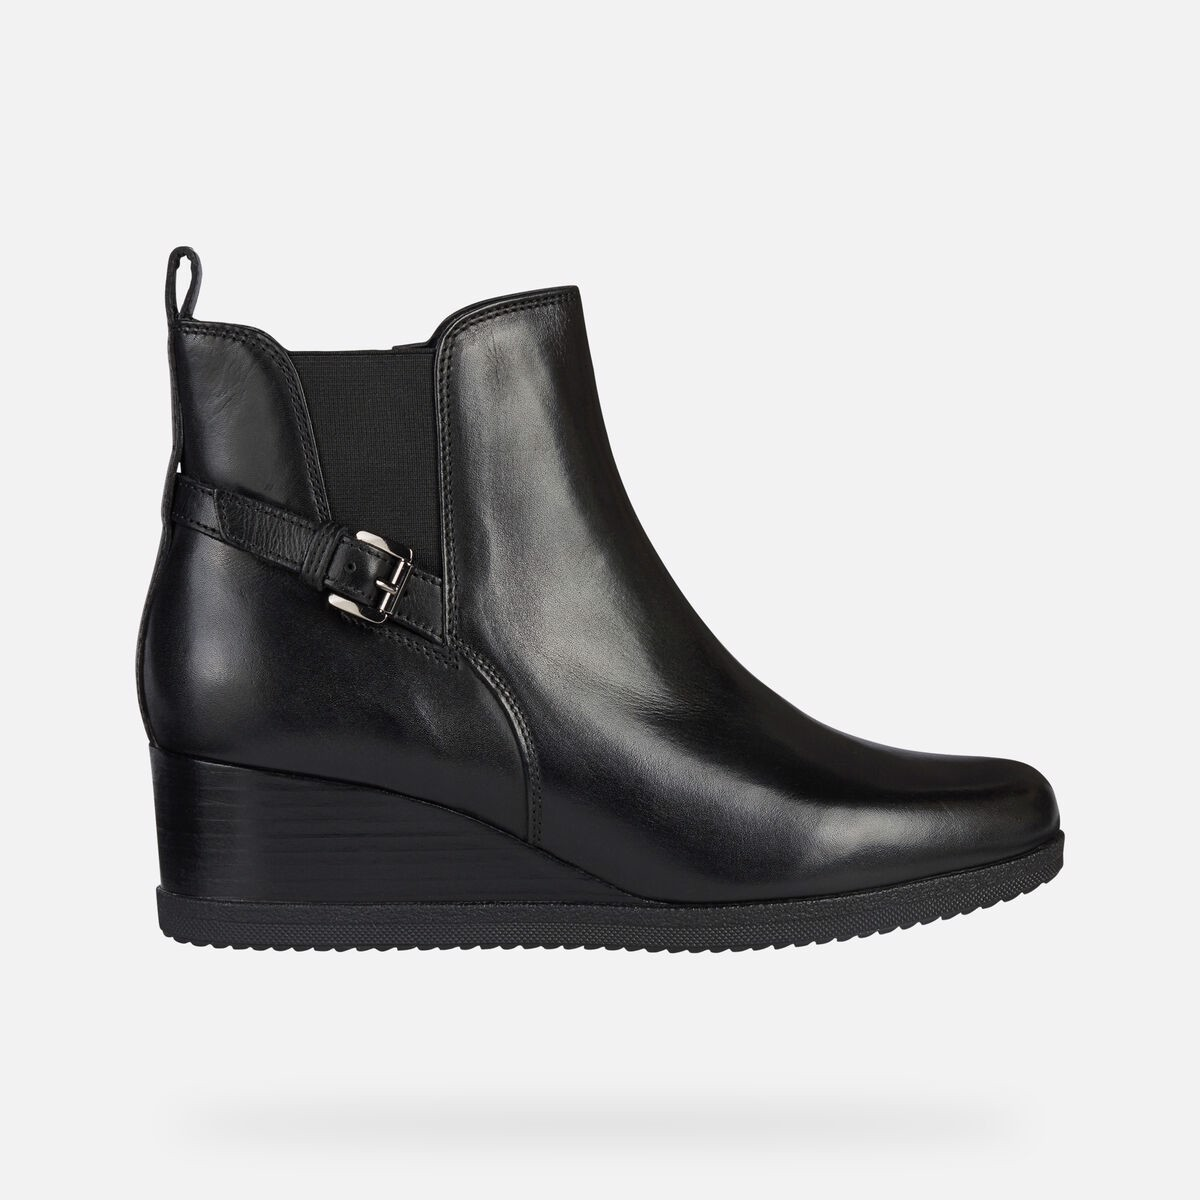 Giày Boots Nữ Geox D Anylla Wedge C - Smo.Lea